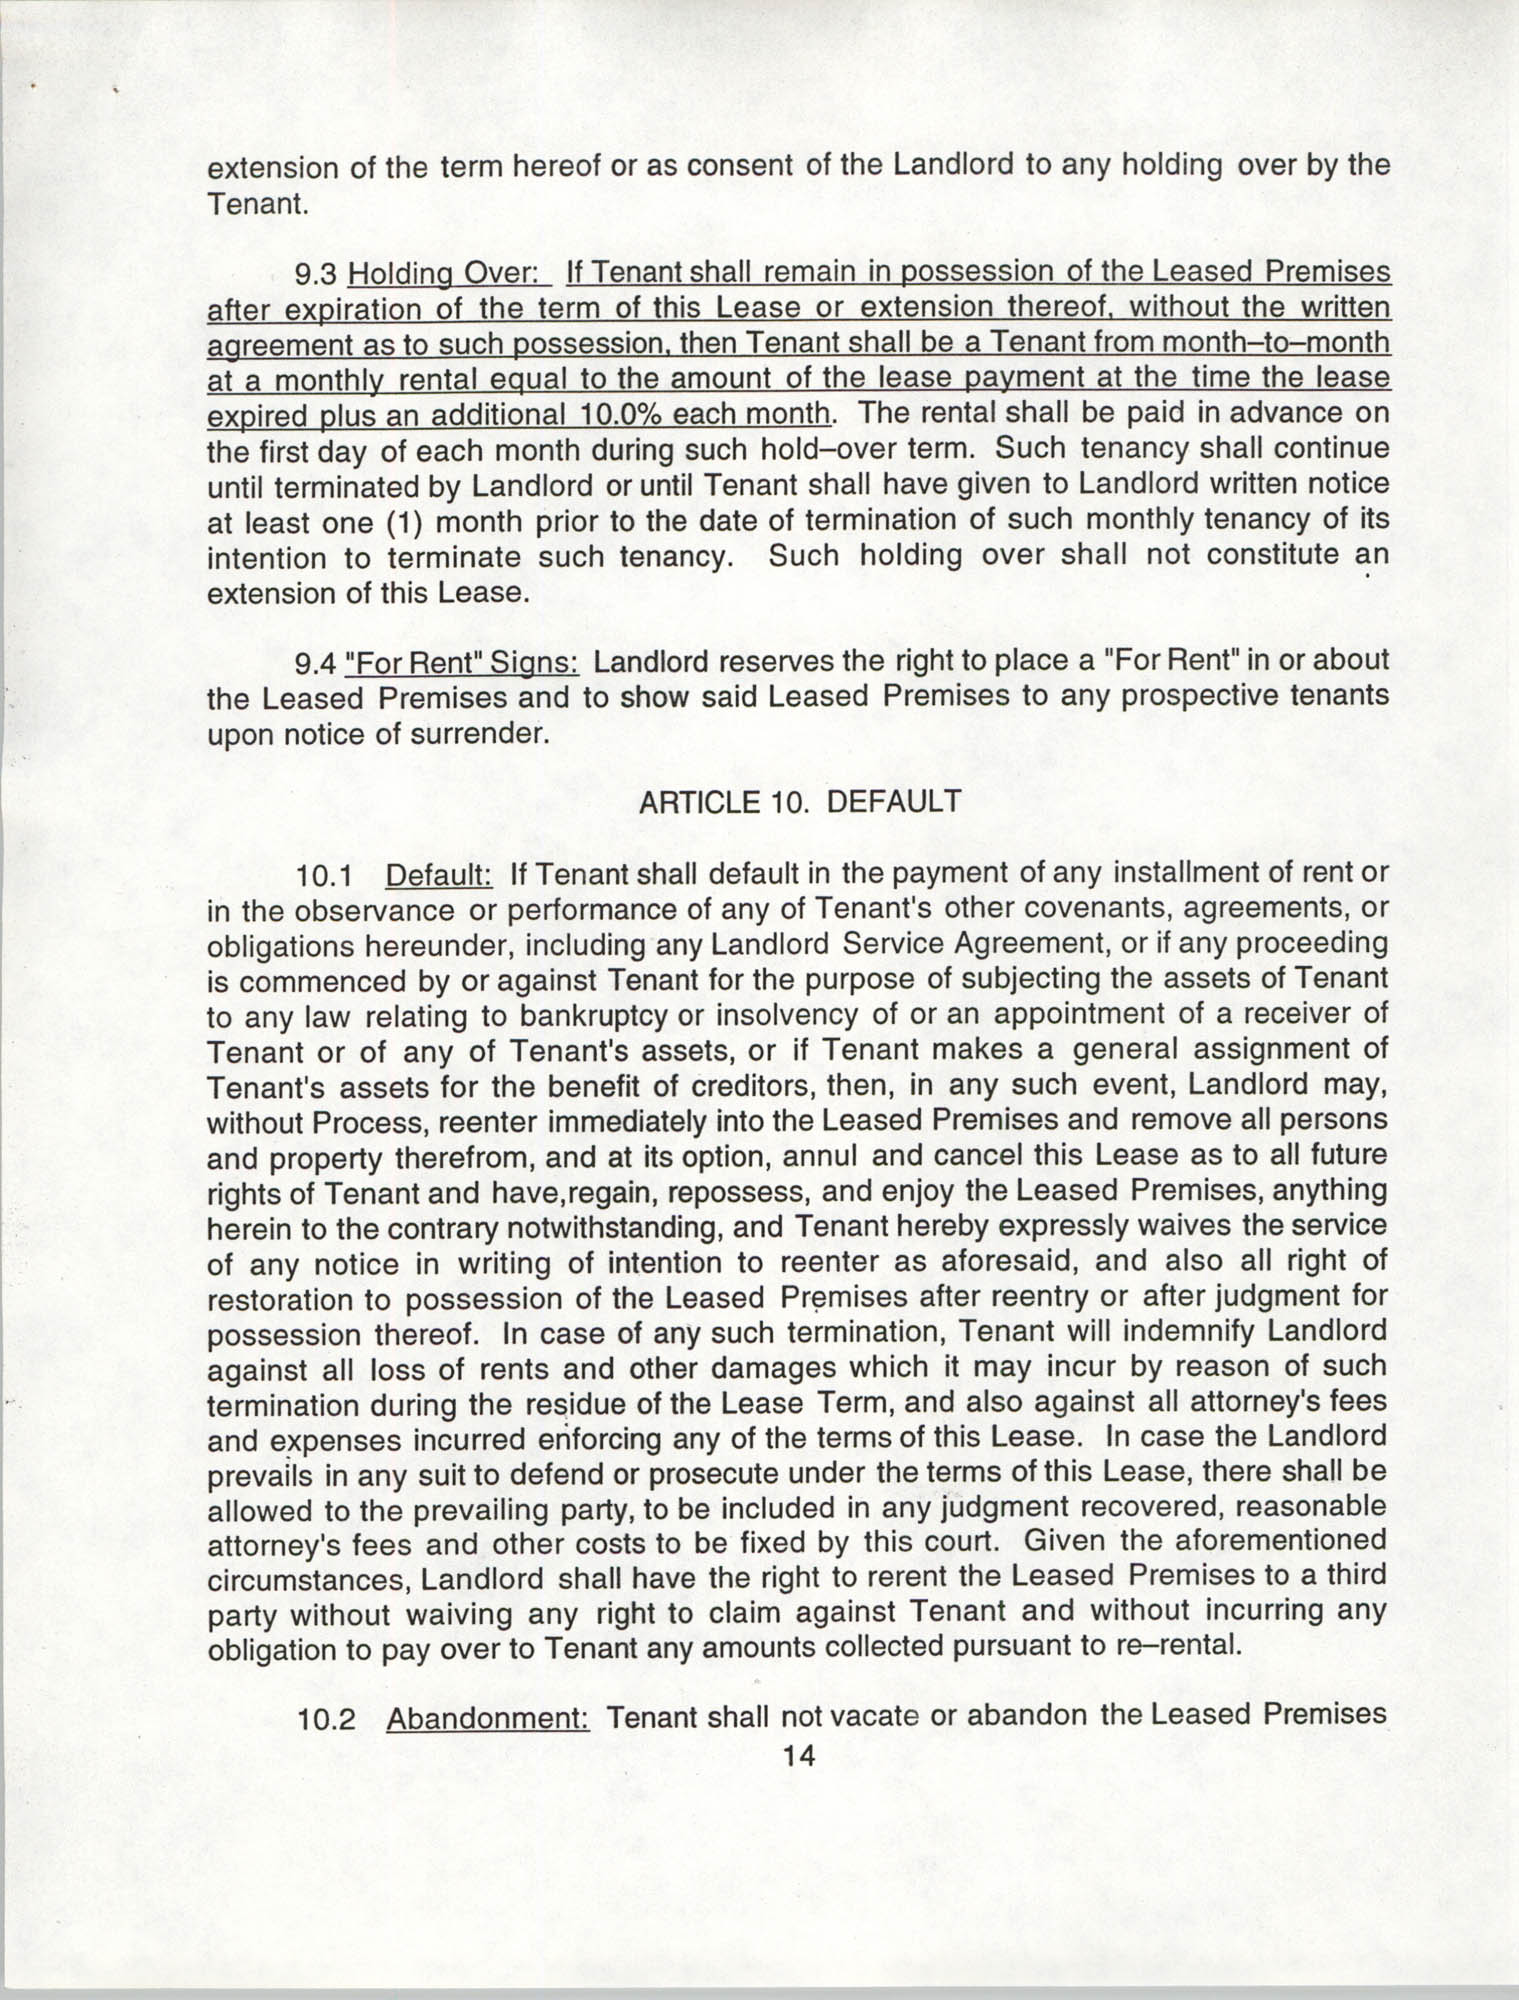 Charleston Branch of the NAACP Leasing Agreement, July 1994 to June 1995, Page 14